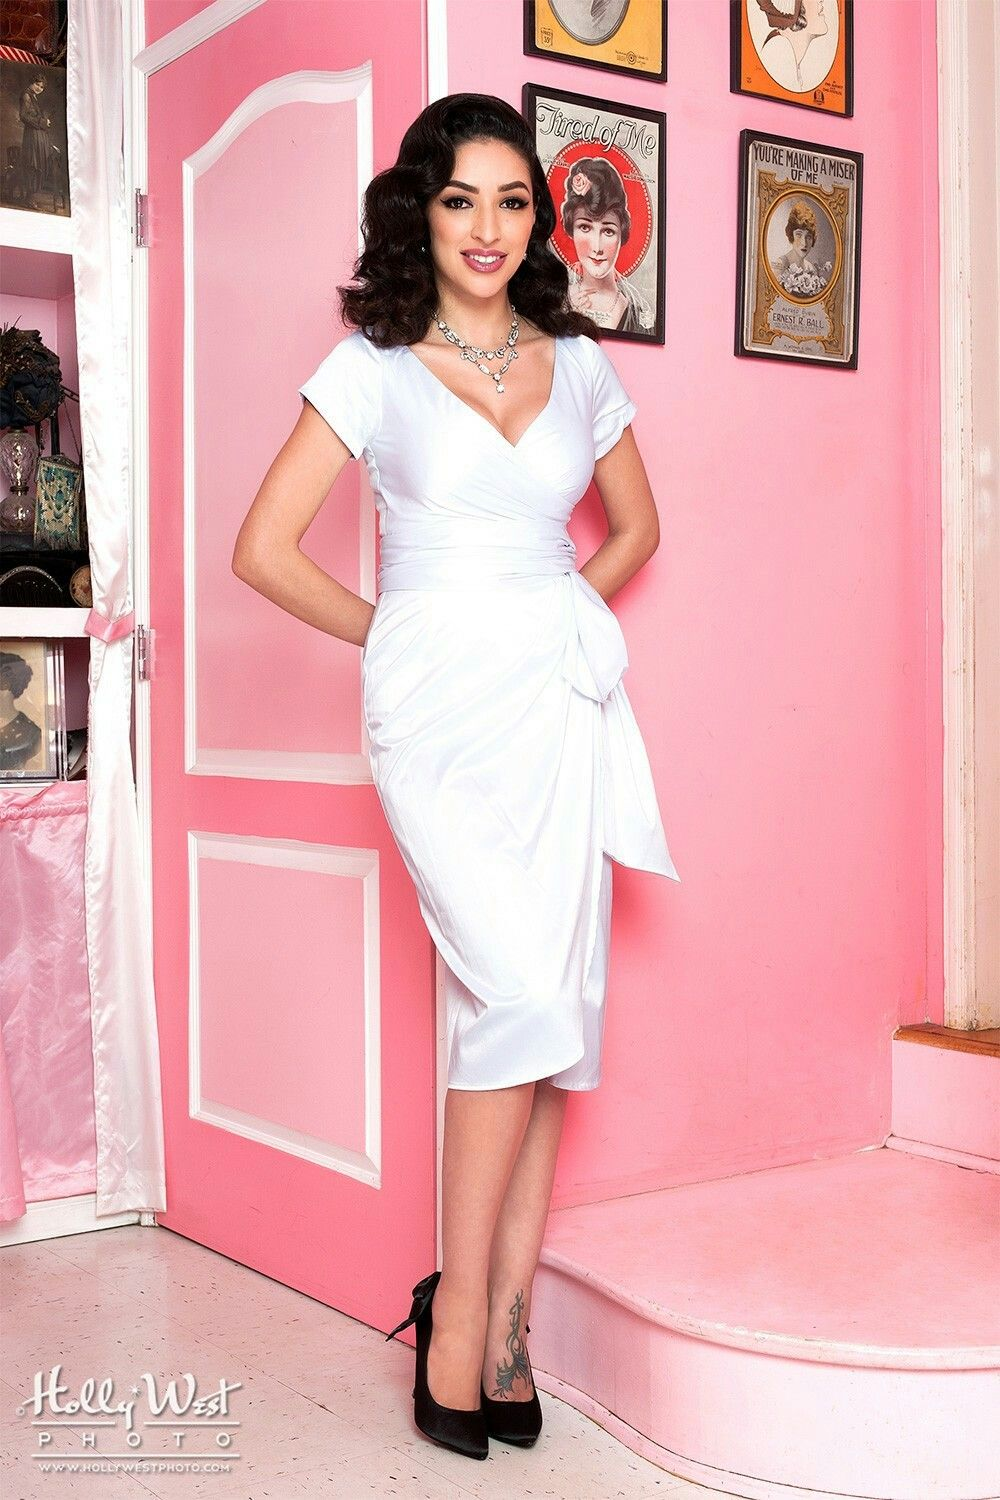 PINUP GIRL | PIN UP - ROCKABILLY SEXY STYL - FASHION | Pinterest